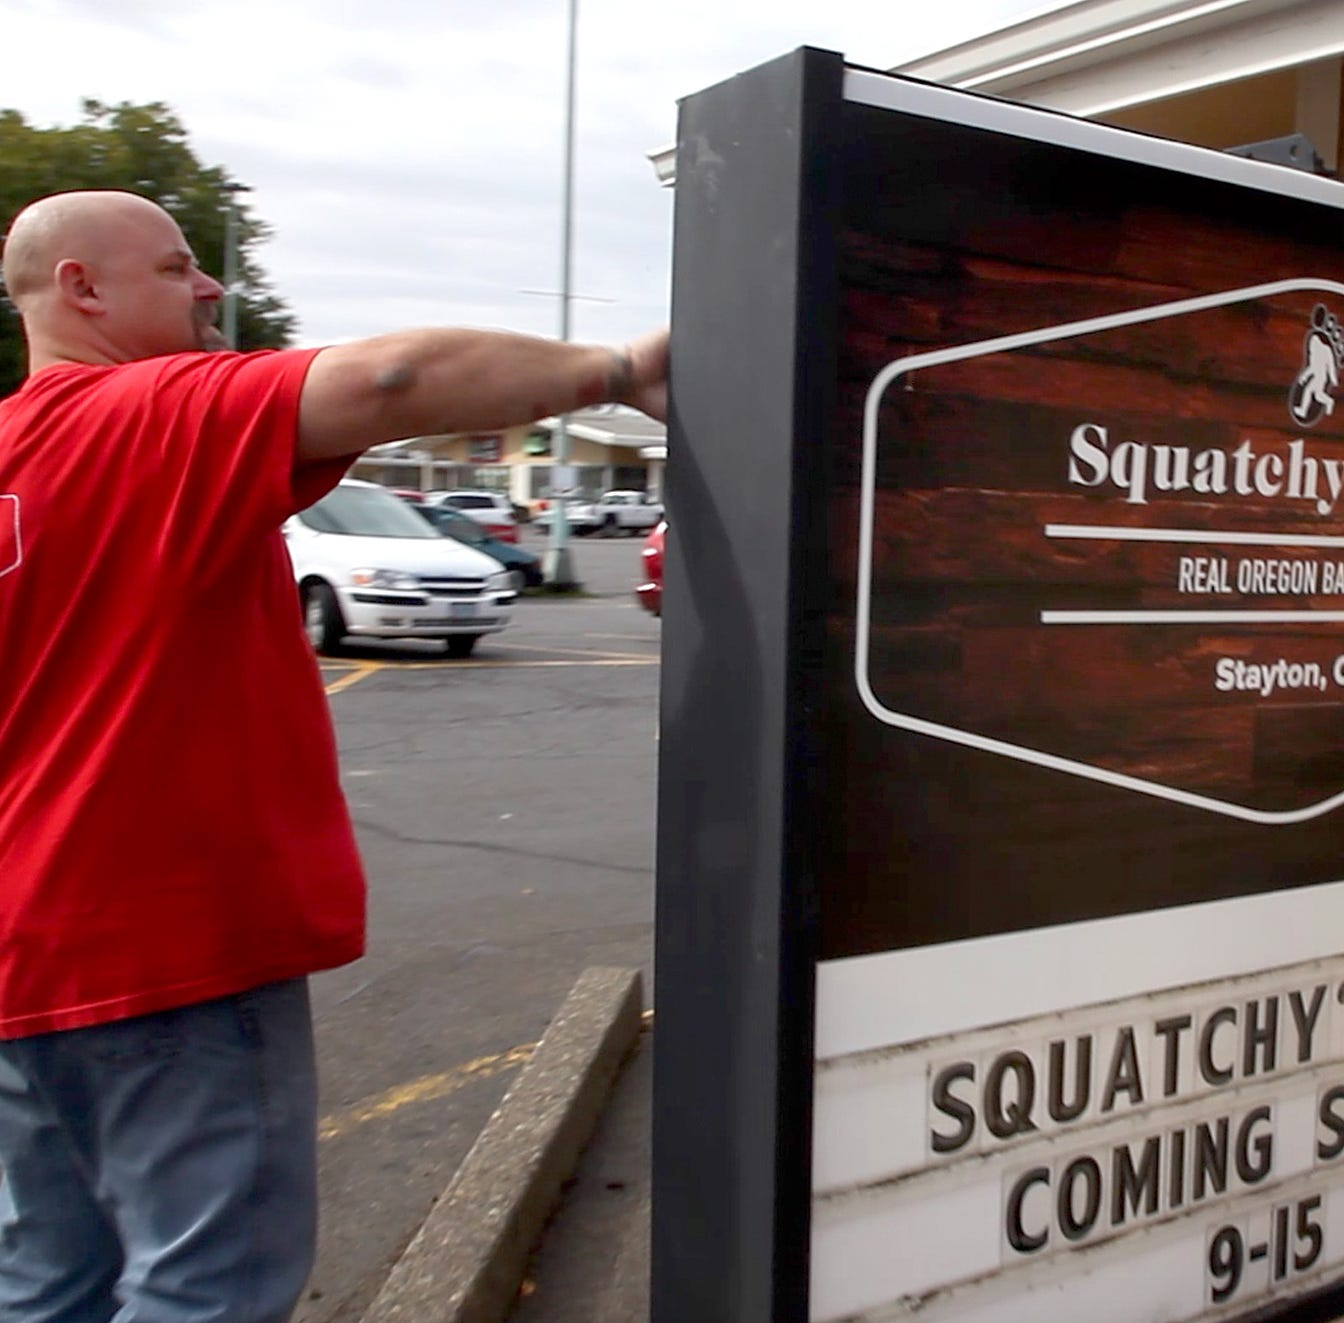 Squatchy's BBQ rebuilds from the ashes, strangers donate $28K to Salem military family